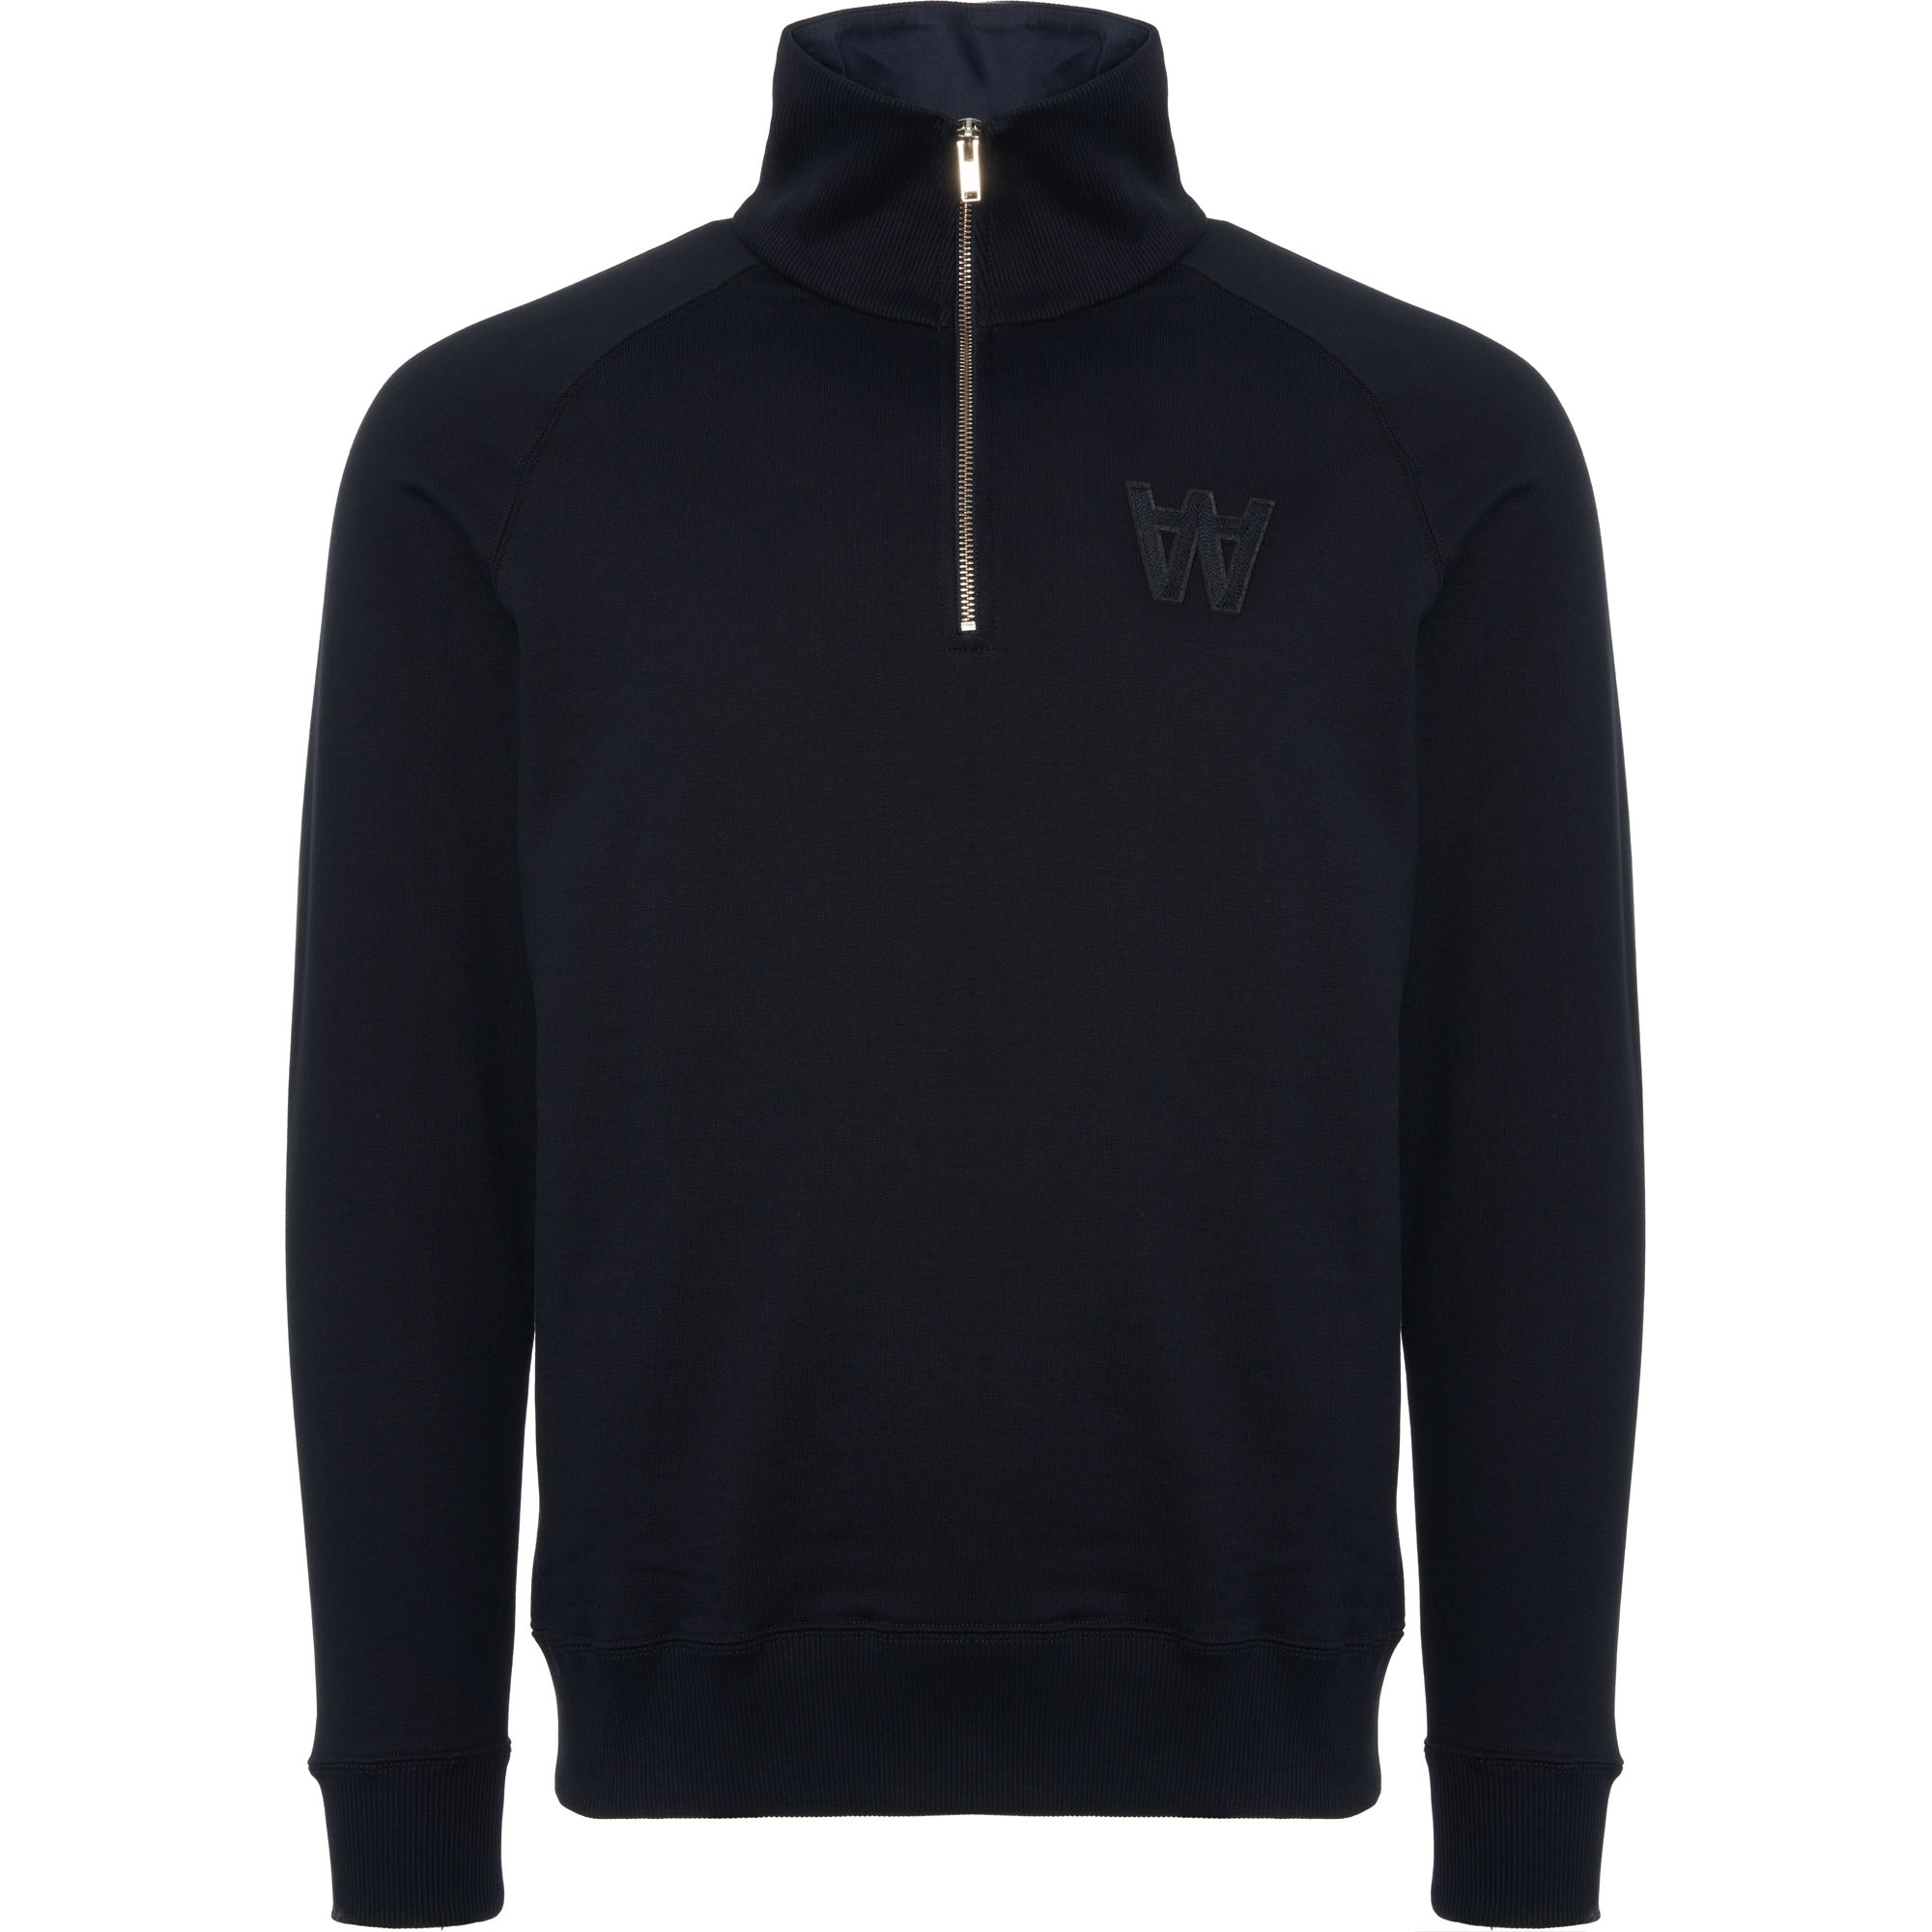 2426 Wood Quarter Curtis Sweatshirt Navy Zip 35423 5wwYxTqar